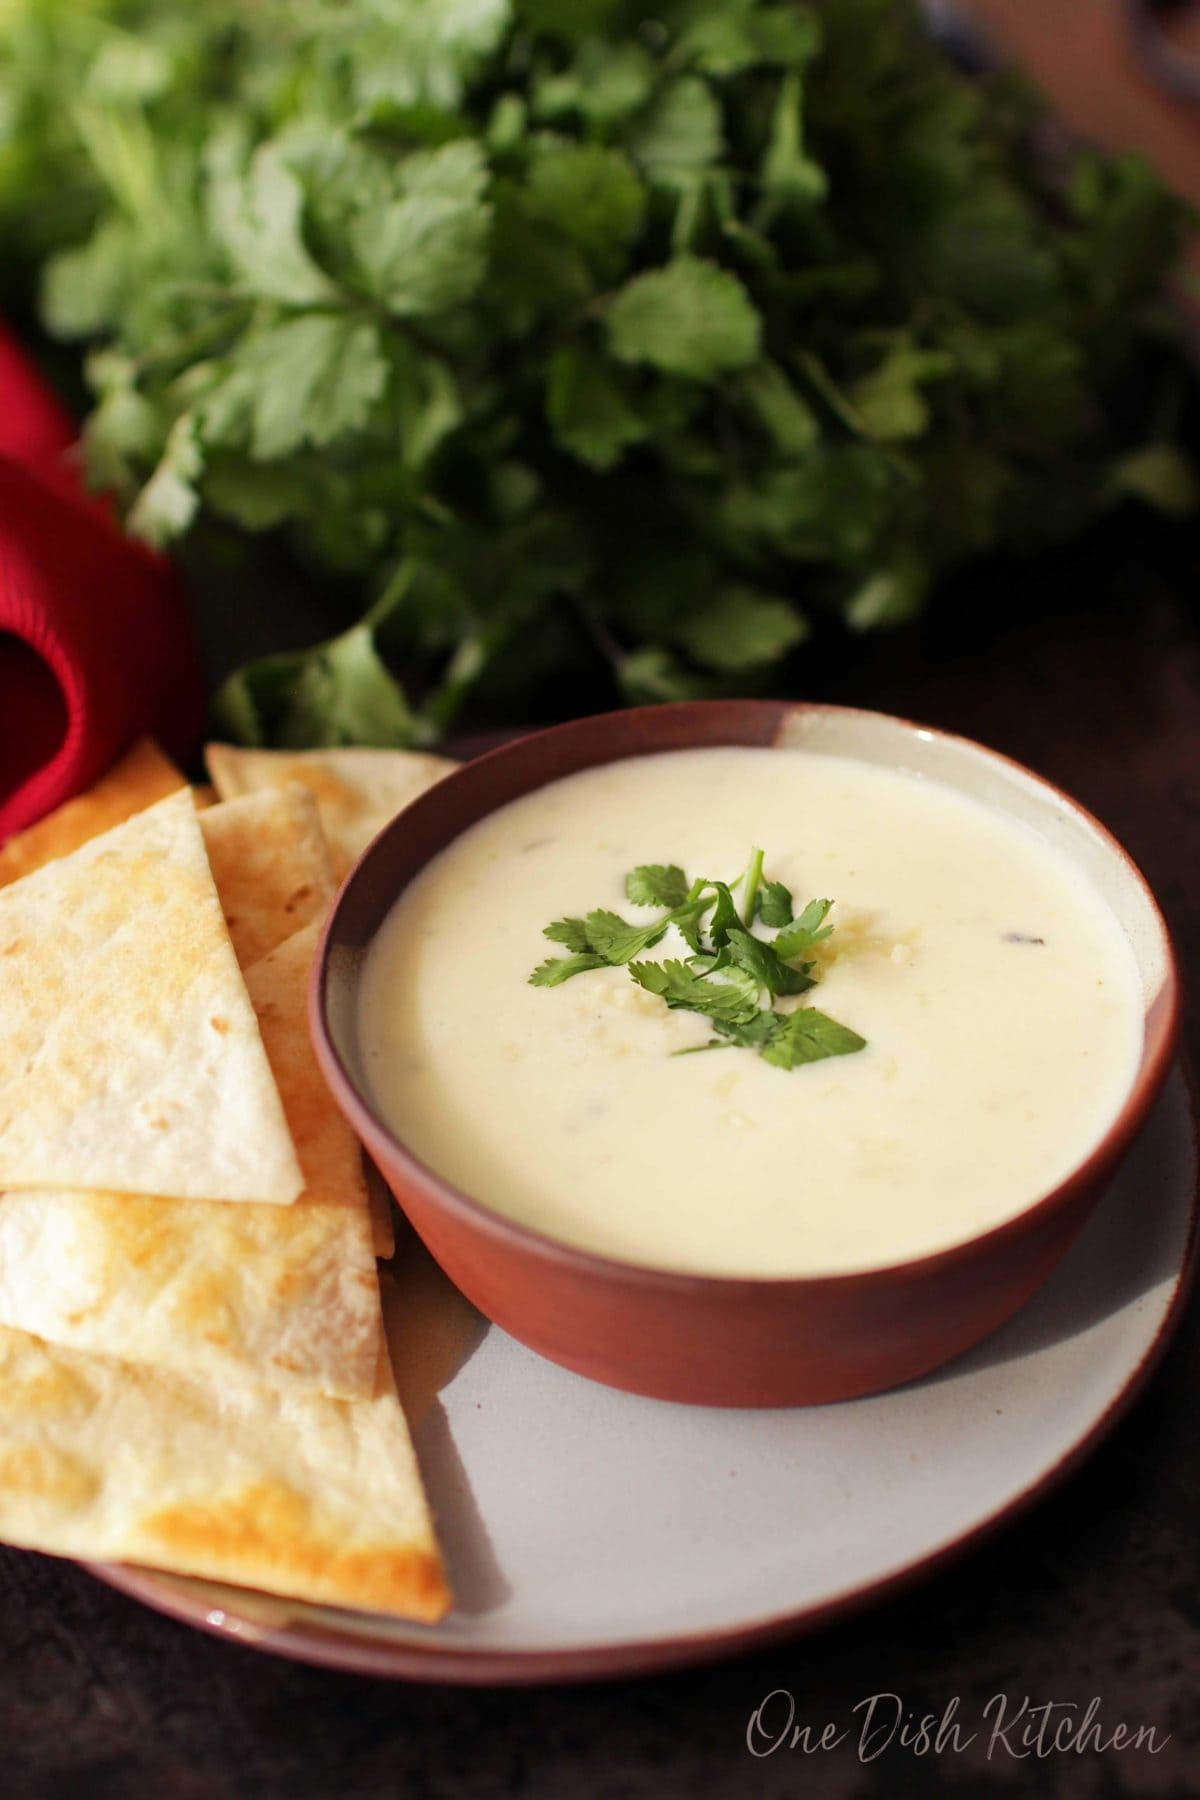 a bowl of white queso next to a plate of tortilla chips.